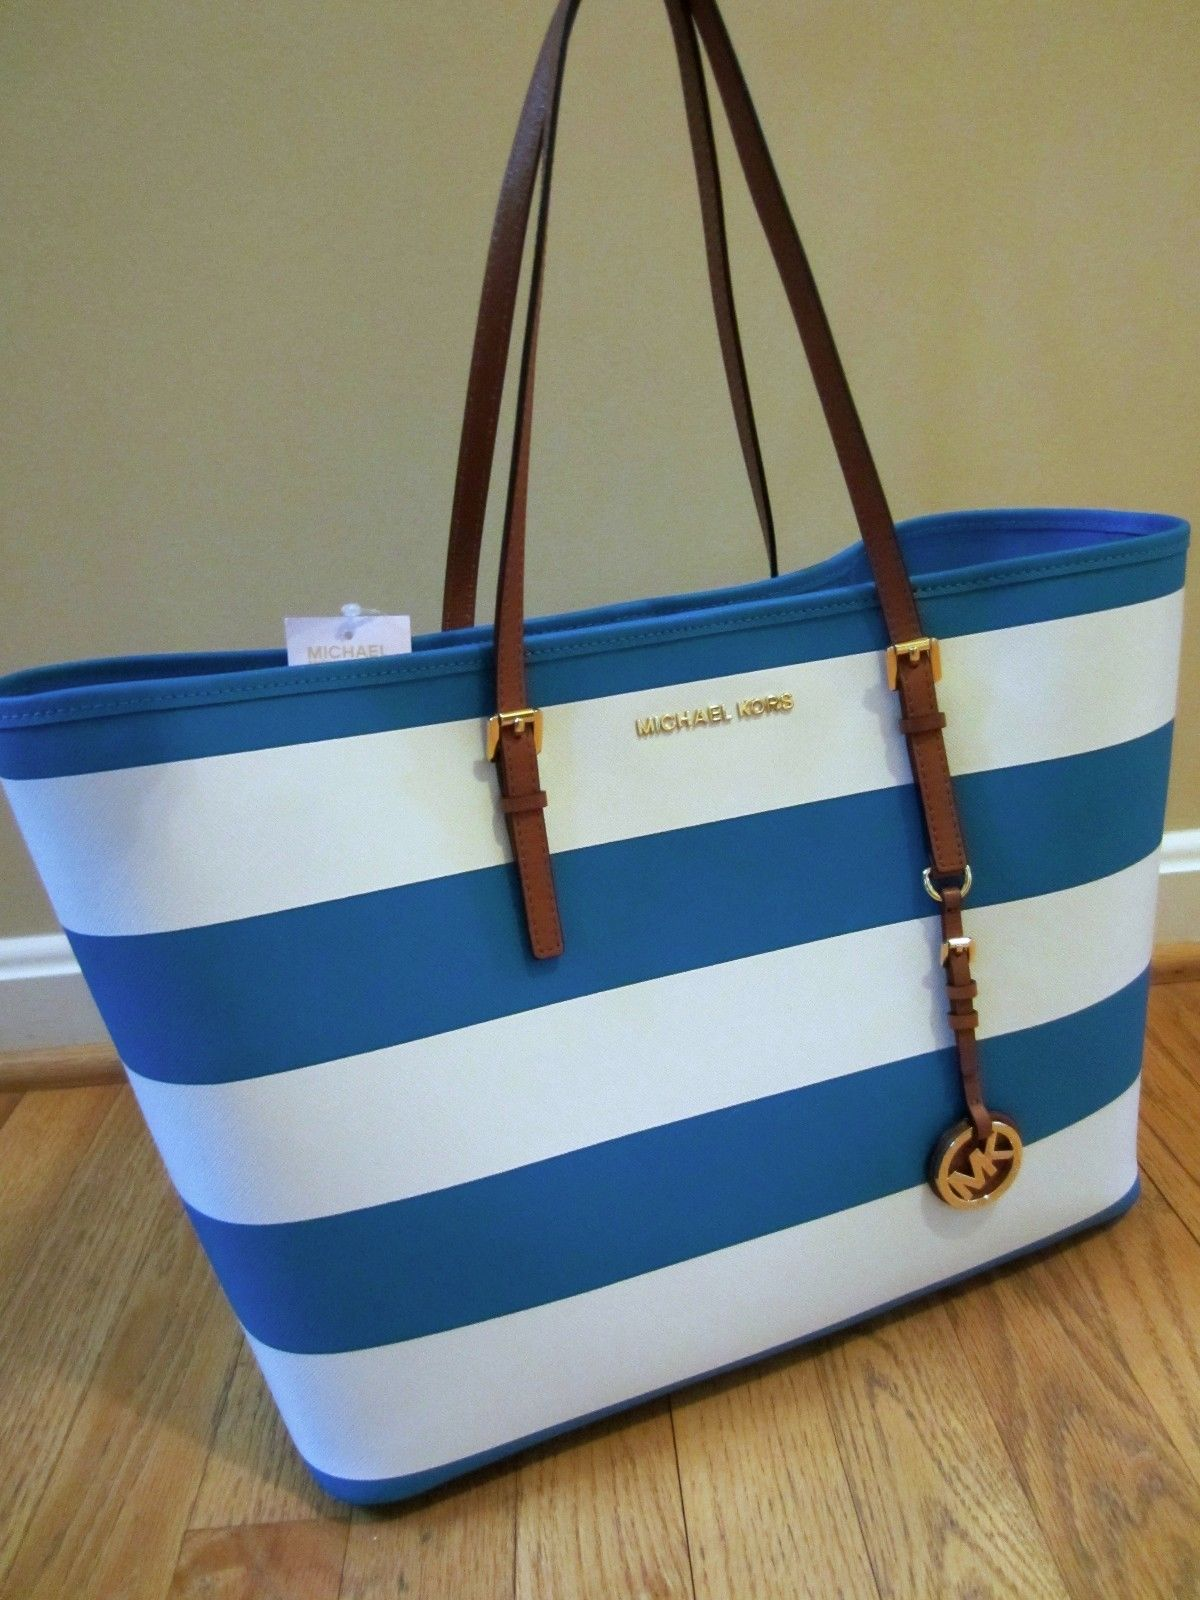 Bagstowear_Michael_Kors_Beach_Tote_Bag - Copy